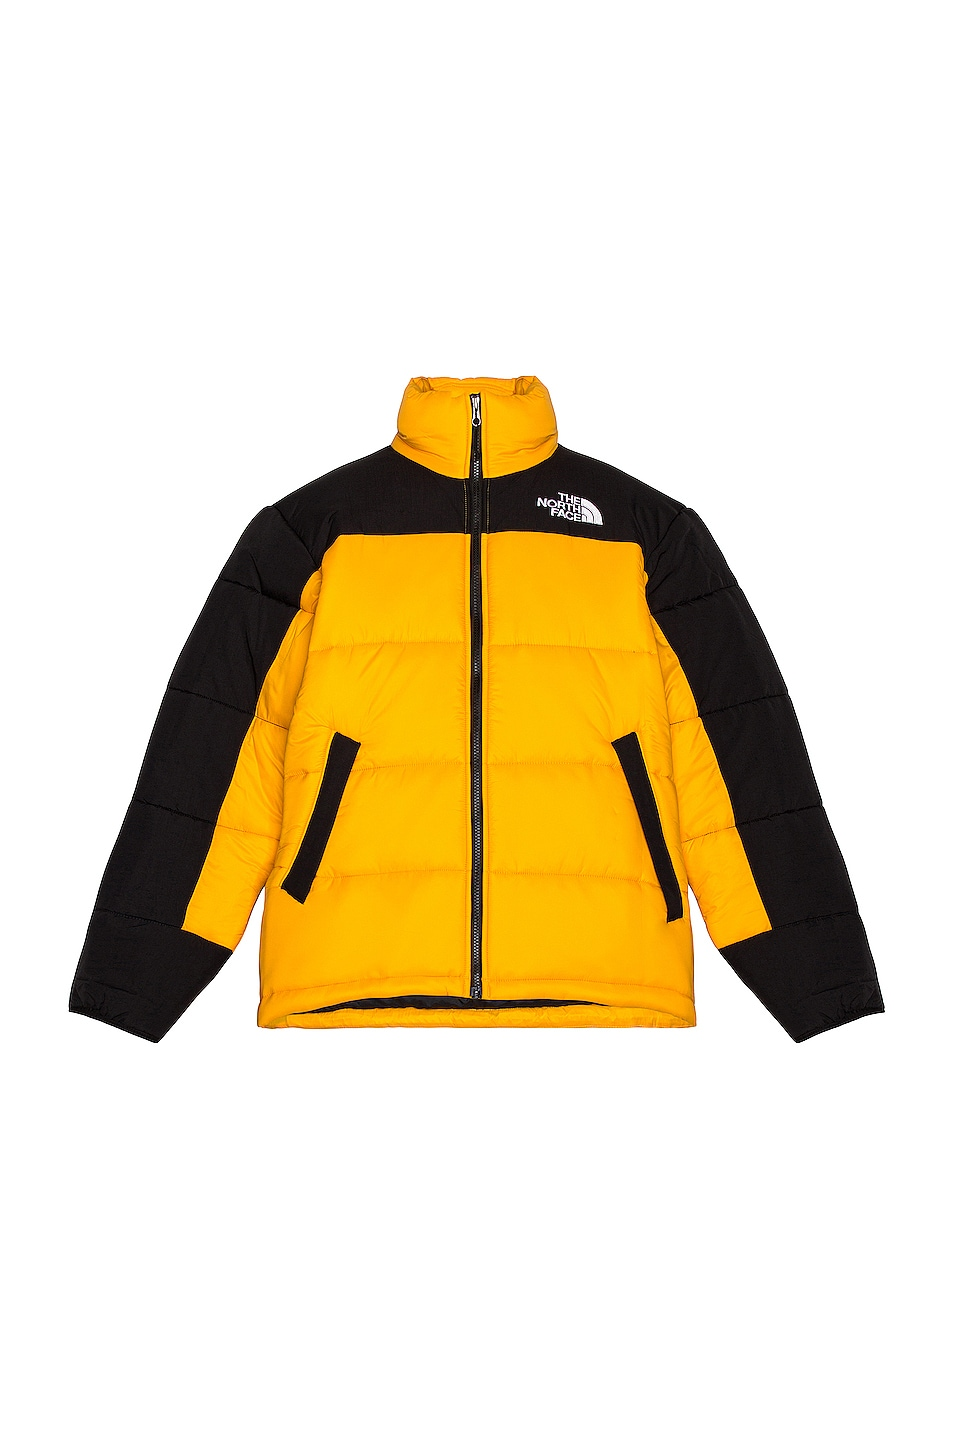 Image 1 of The North Face HMLYN Insulated Jacket in Summit Gold & TNF Black